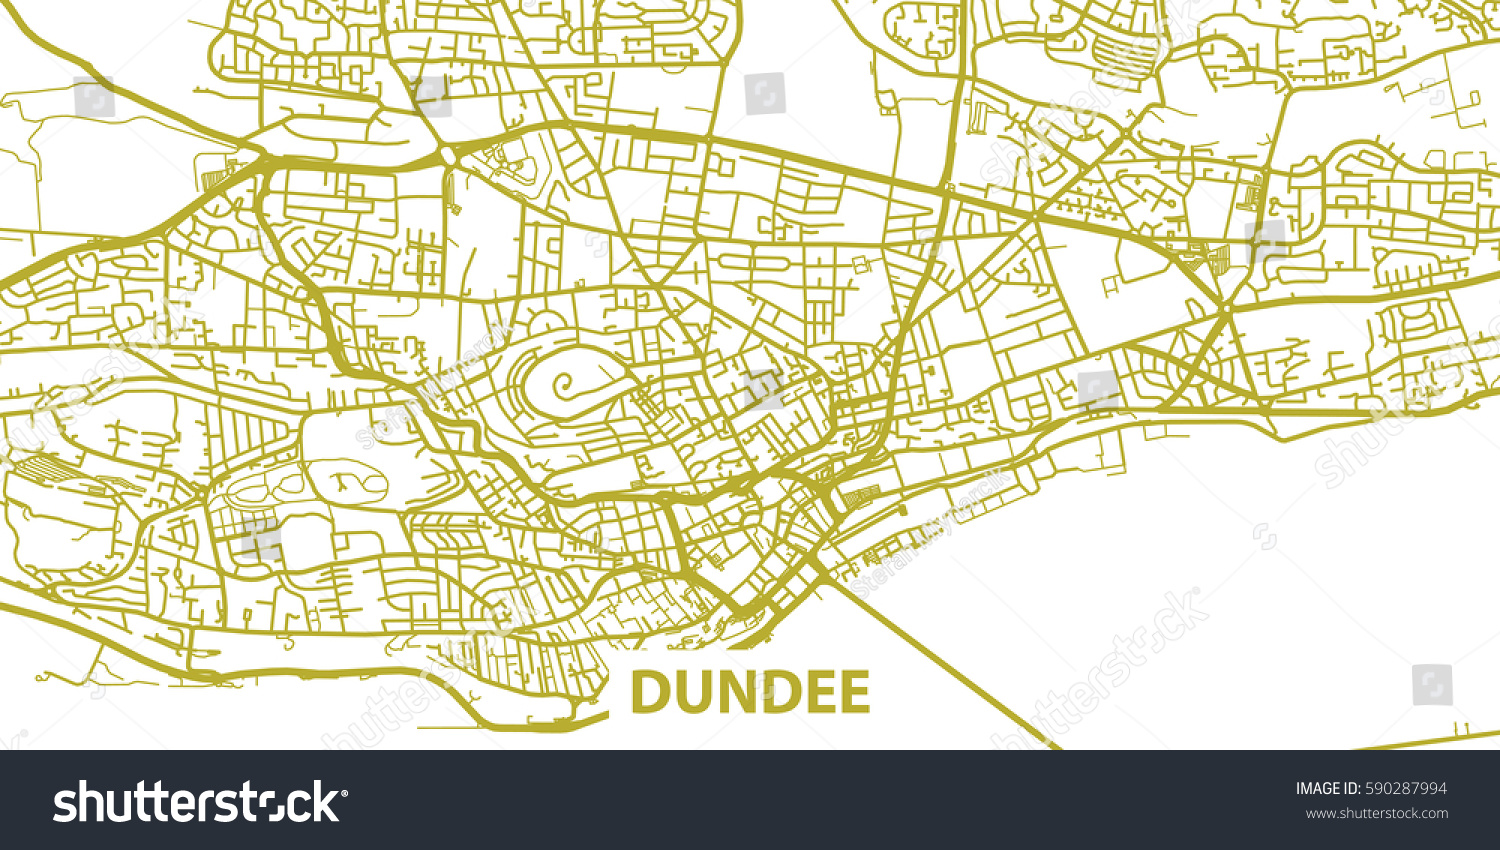 detailed vector map dundee based on stock vector 590287994